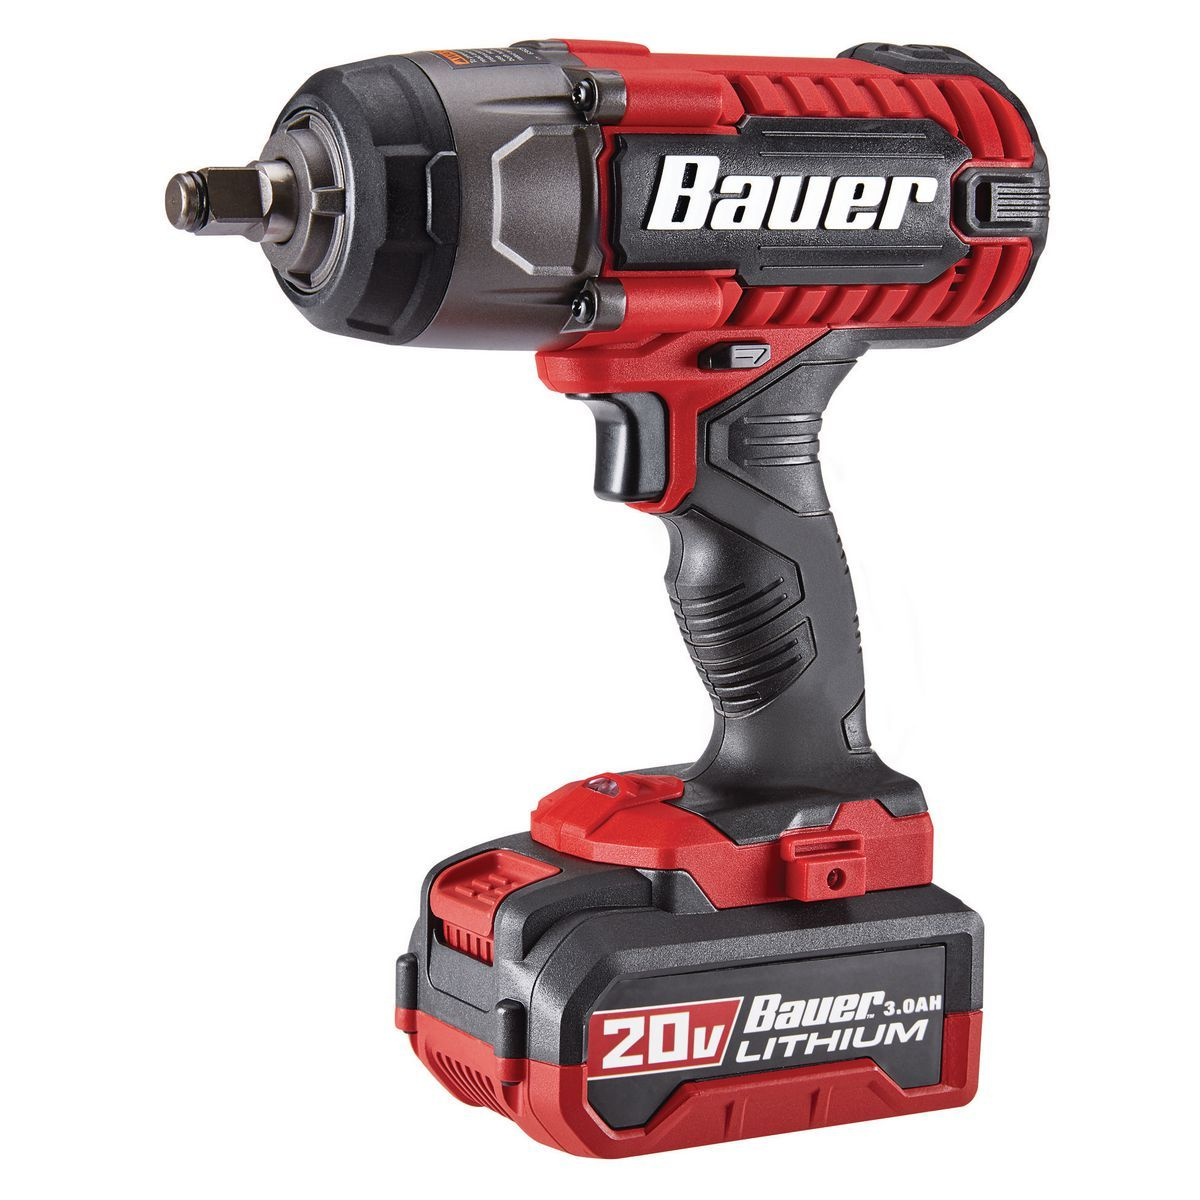 20v Hypermax Lithium Ion Cordless 1 2 In Impact Wrench Tool Only In 2020 Impact Wrench Wrench Tool Wrench